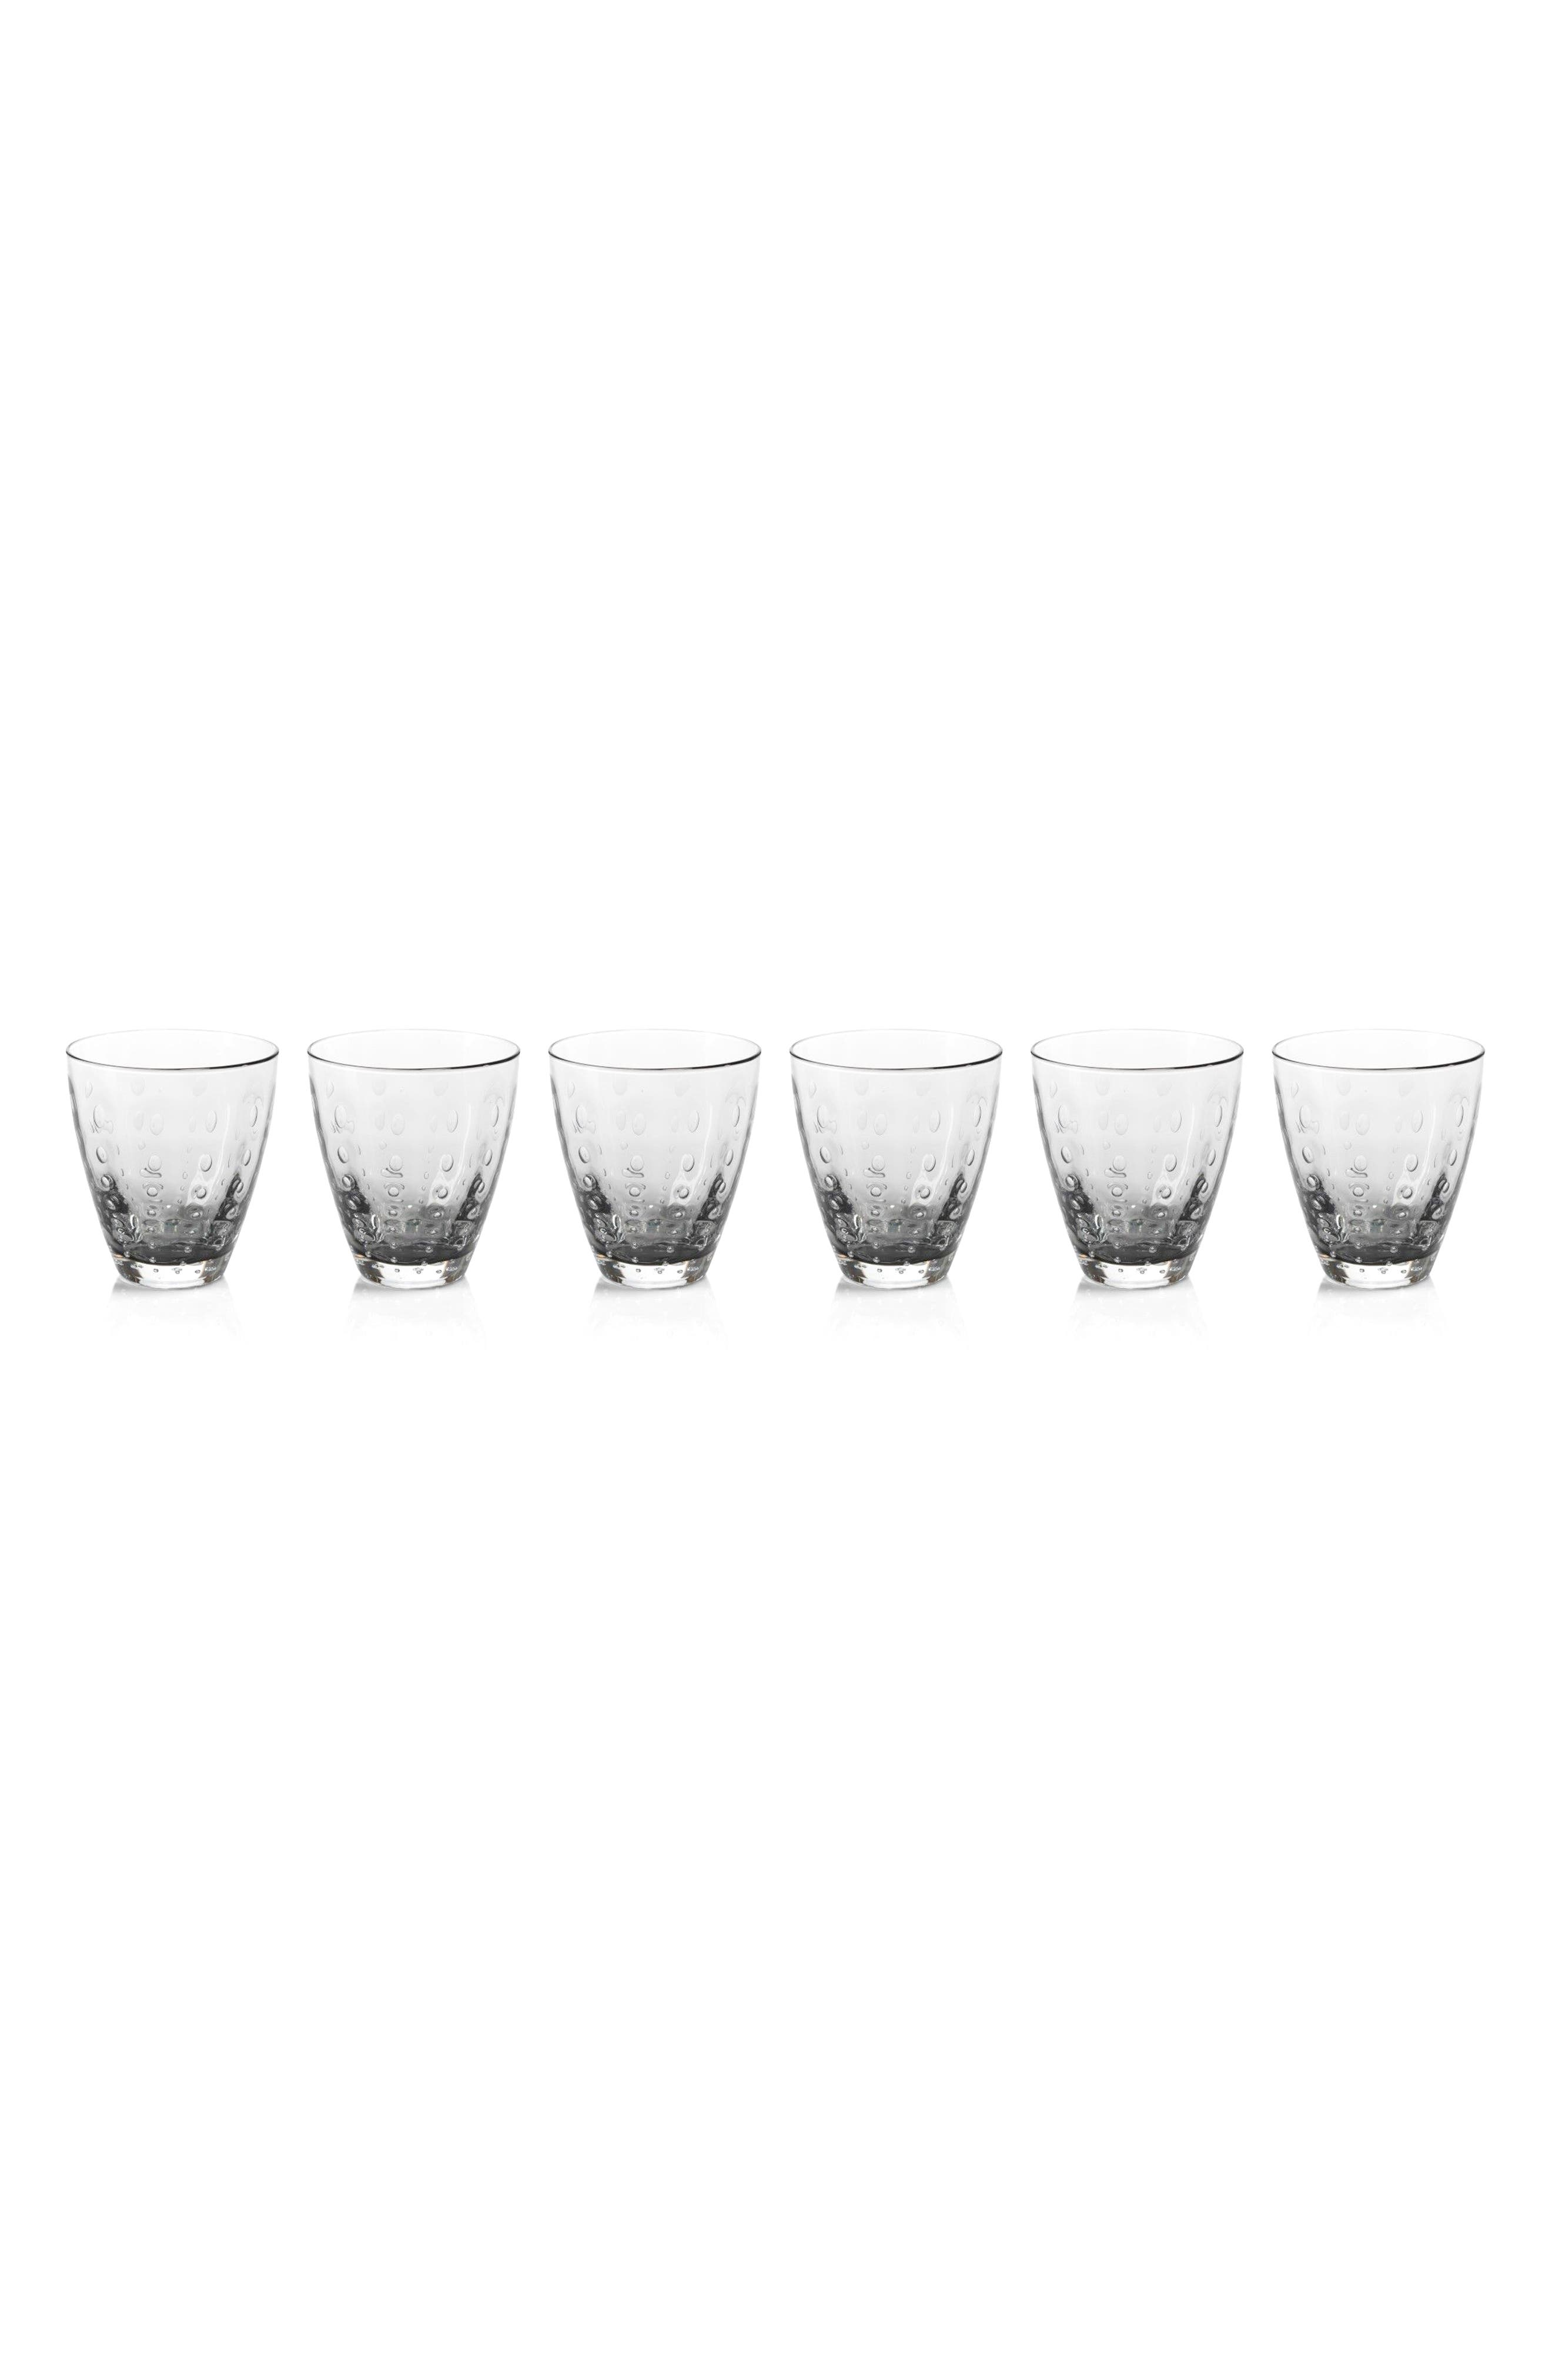 Bubbled Set of 6 Double Old Fashioned Glasses,                         Main,                         color, Clear